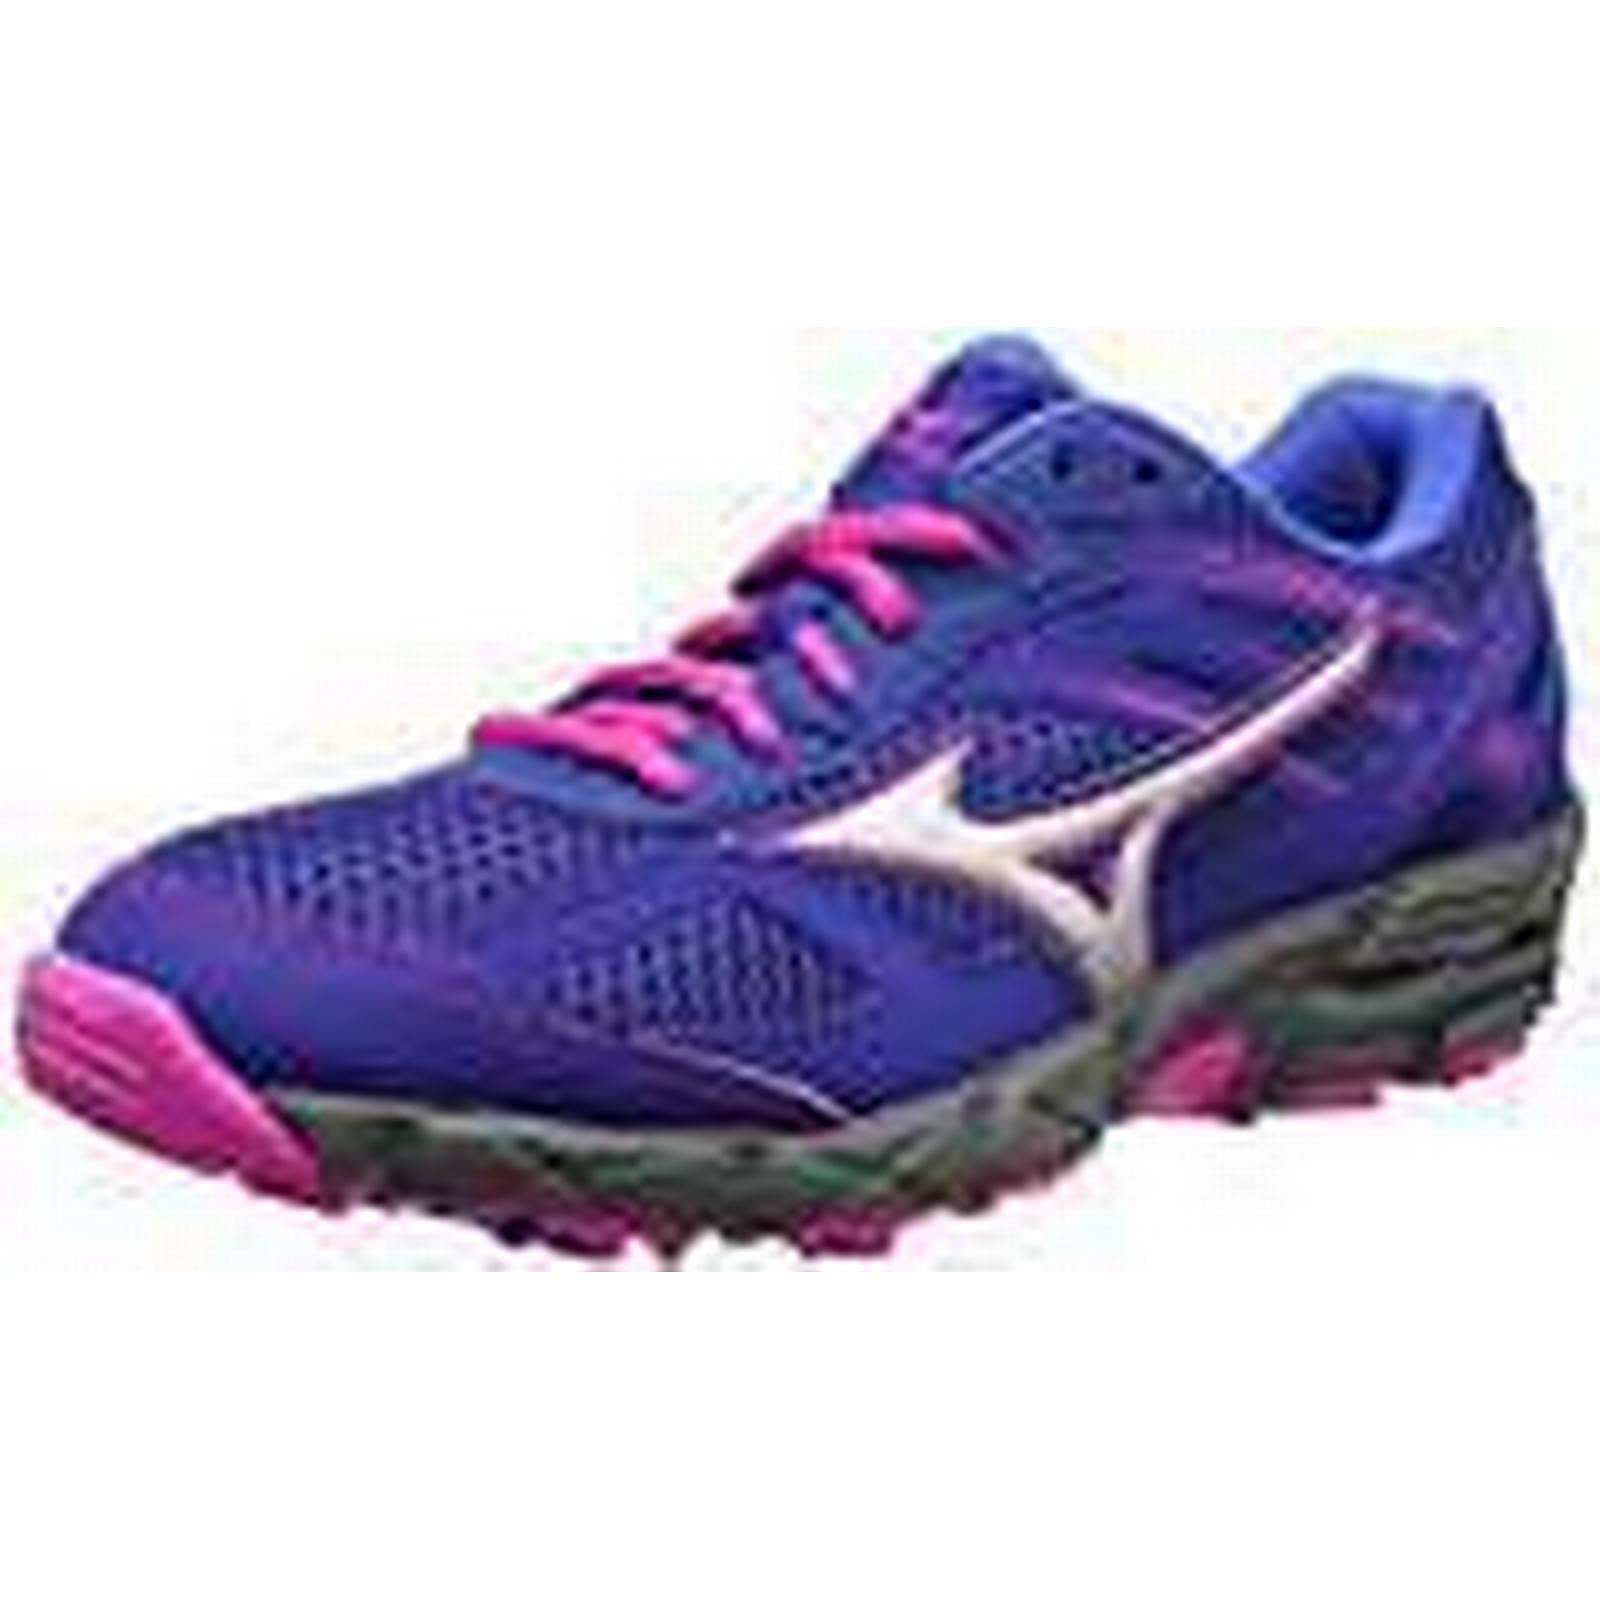 Mizuno Women's Wave Kien Shoes, 3 (W) Trail Running Shoes, Kien (Mazarine Blue/Silver/Electric), 7 UK 40 1/2 EU a30537